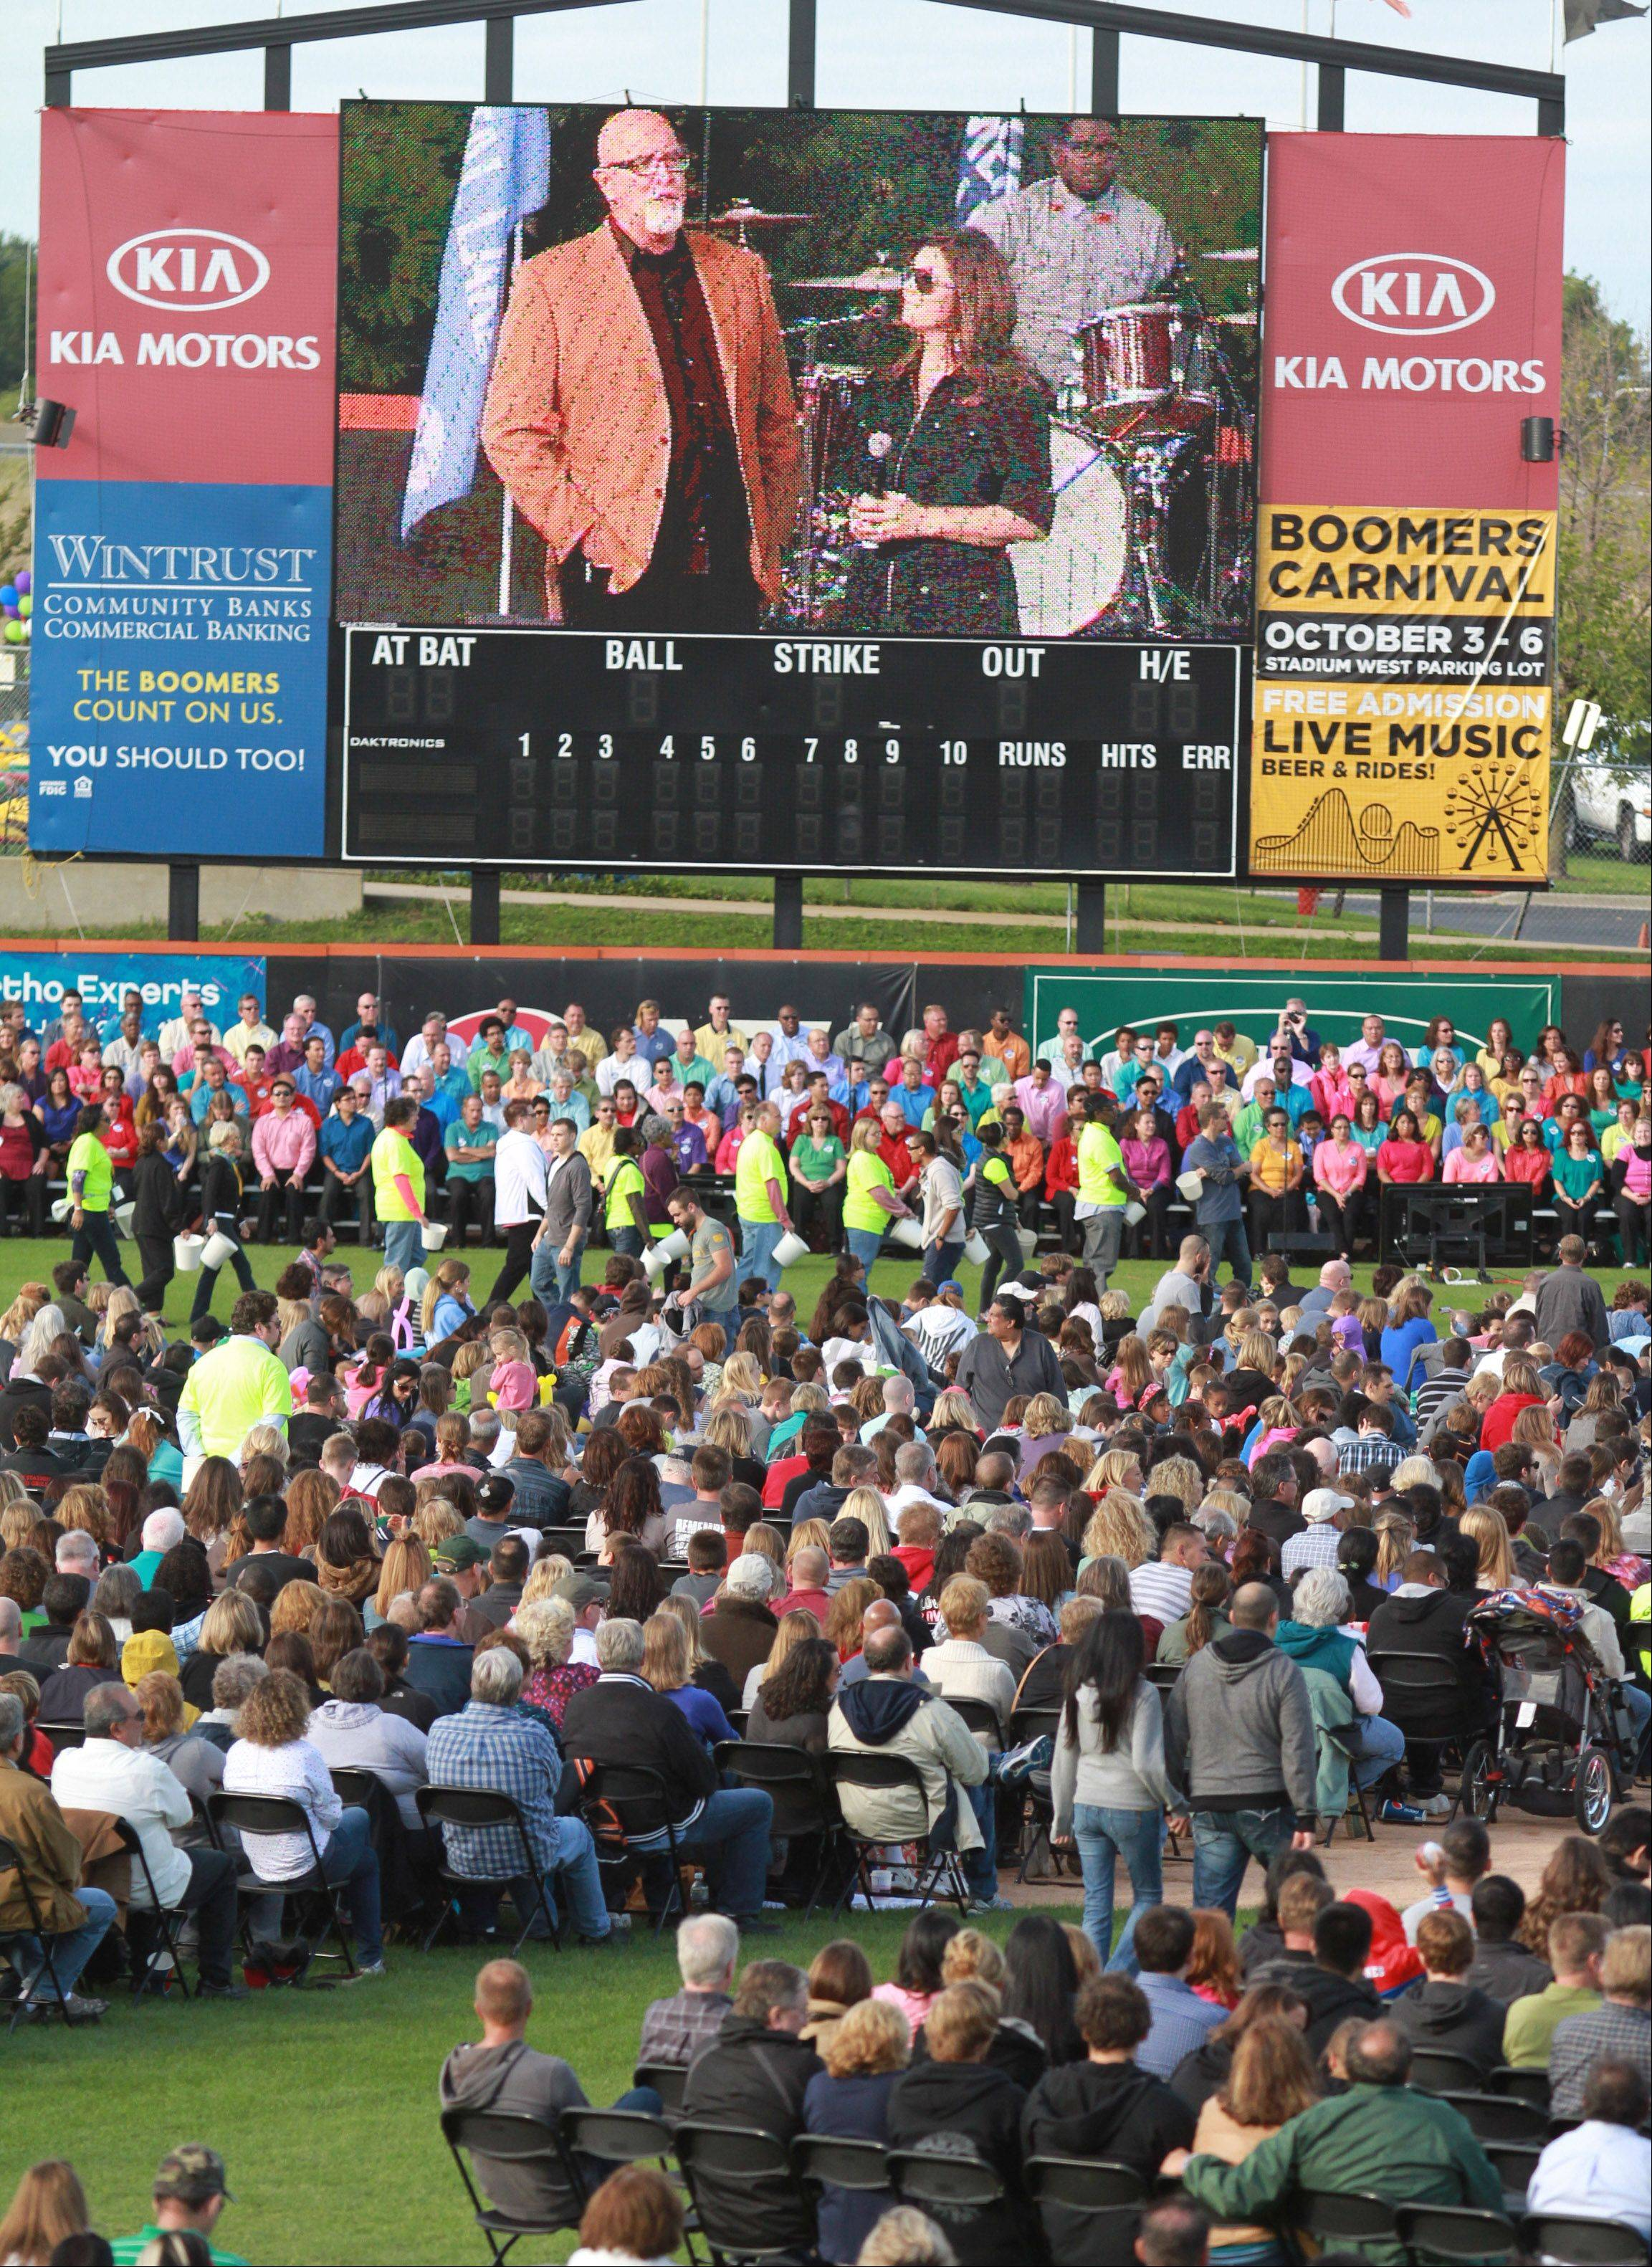 James and Kathy MacDonald speak at Harvest Bible Chapel's 25th anniversary celebration Saturday at Boomers Stadium in Schaumburg. James MacDonald is the chapel's founding senior pastor.